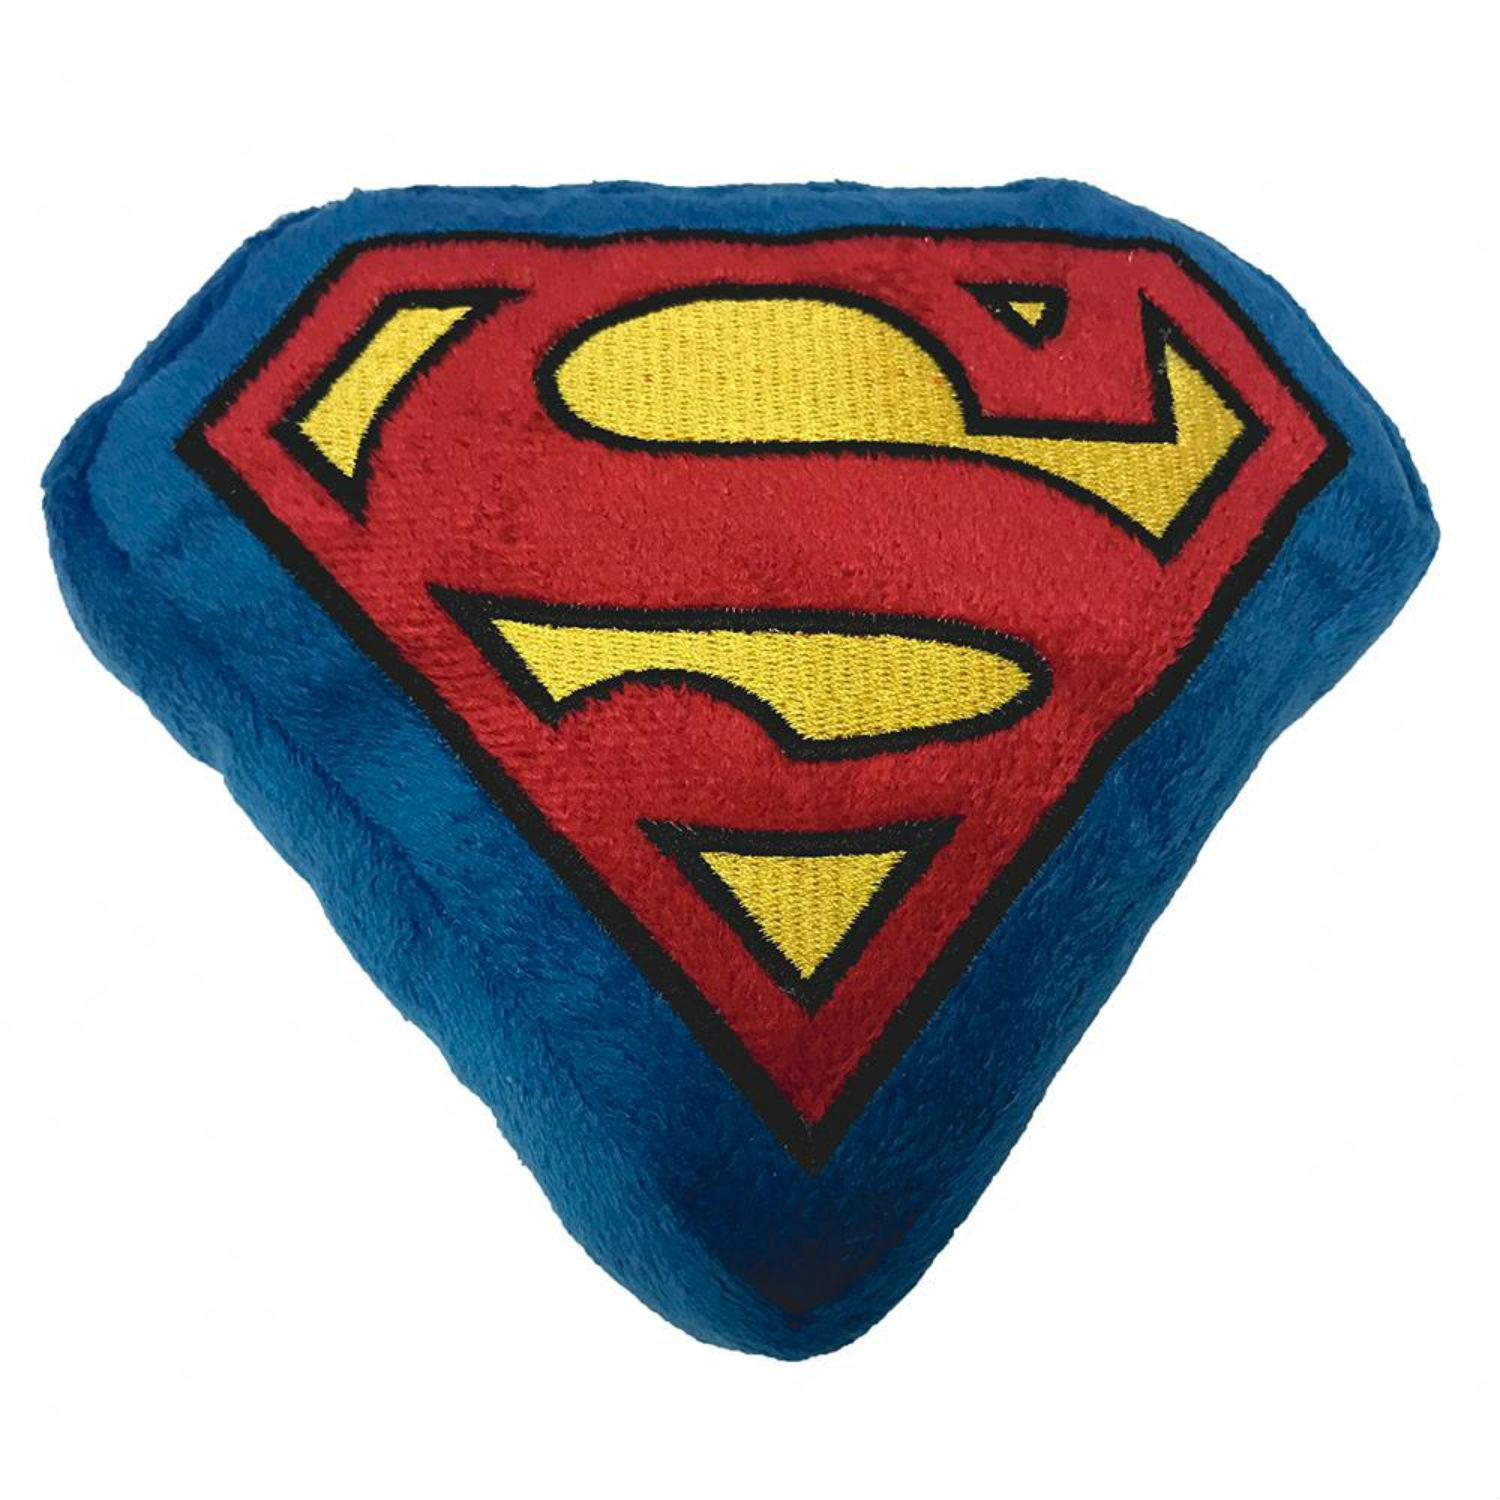 Superman Squeaky Plush Dog Toy by Buckle-Down